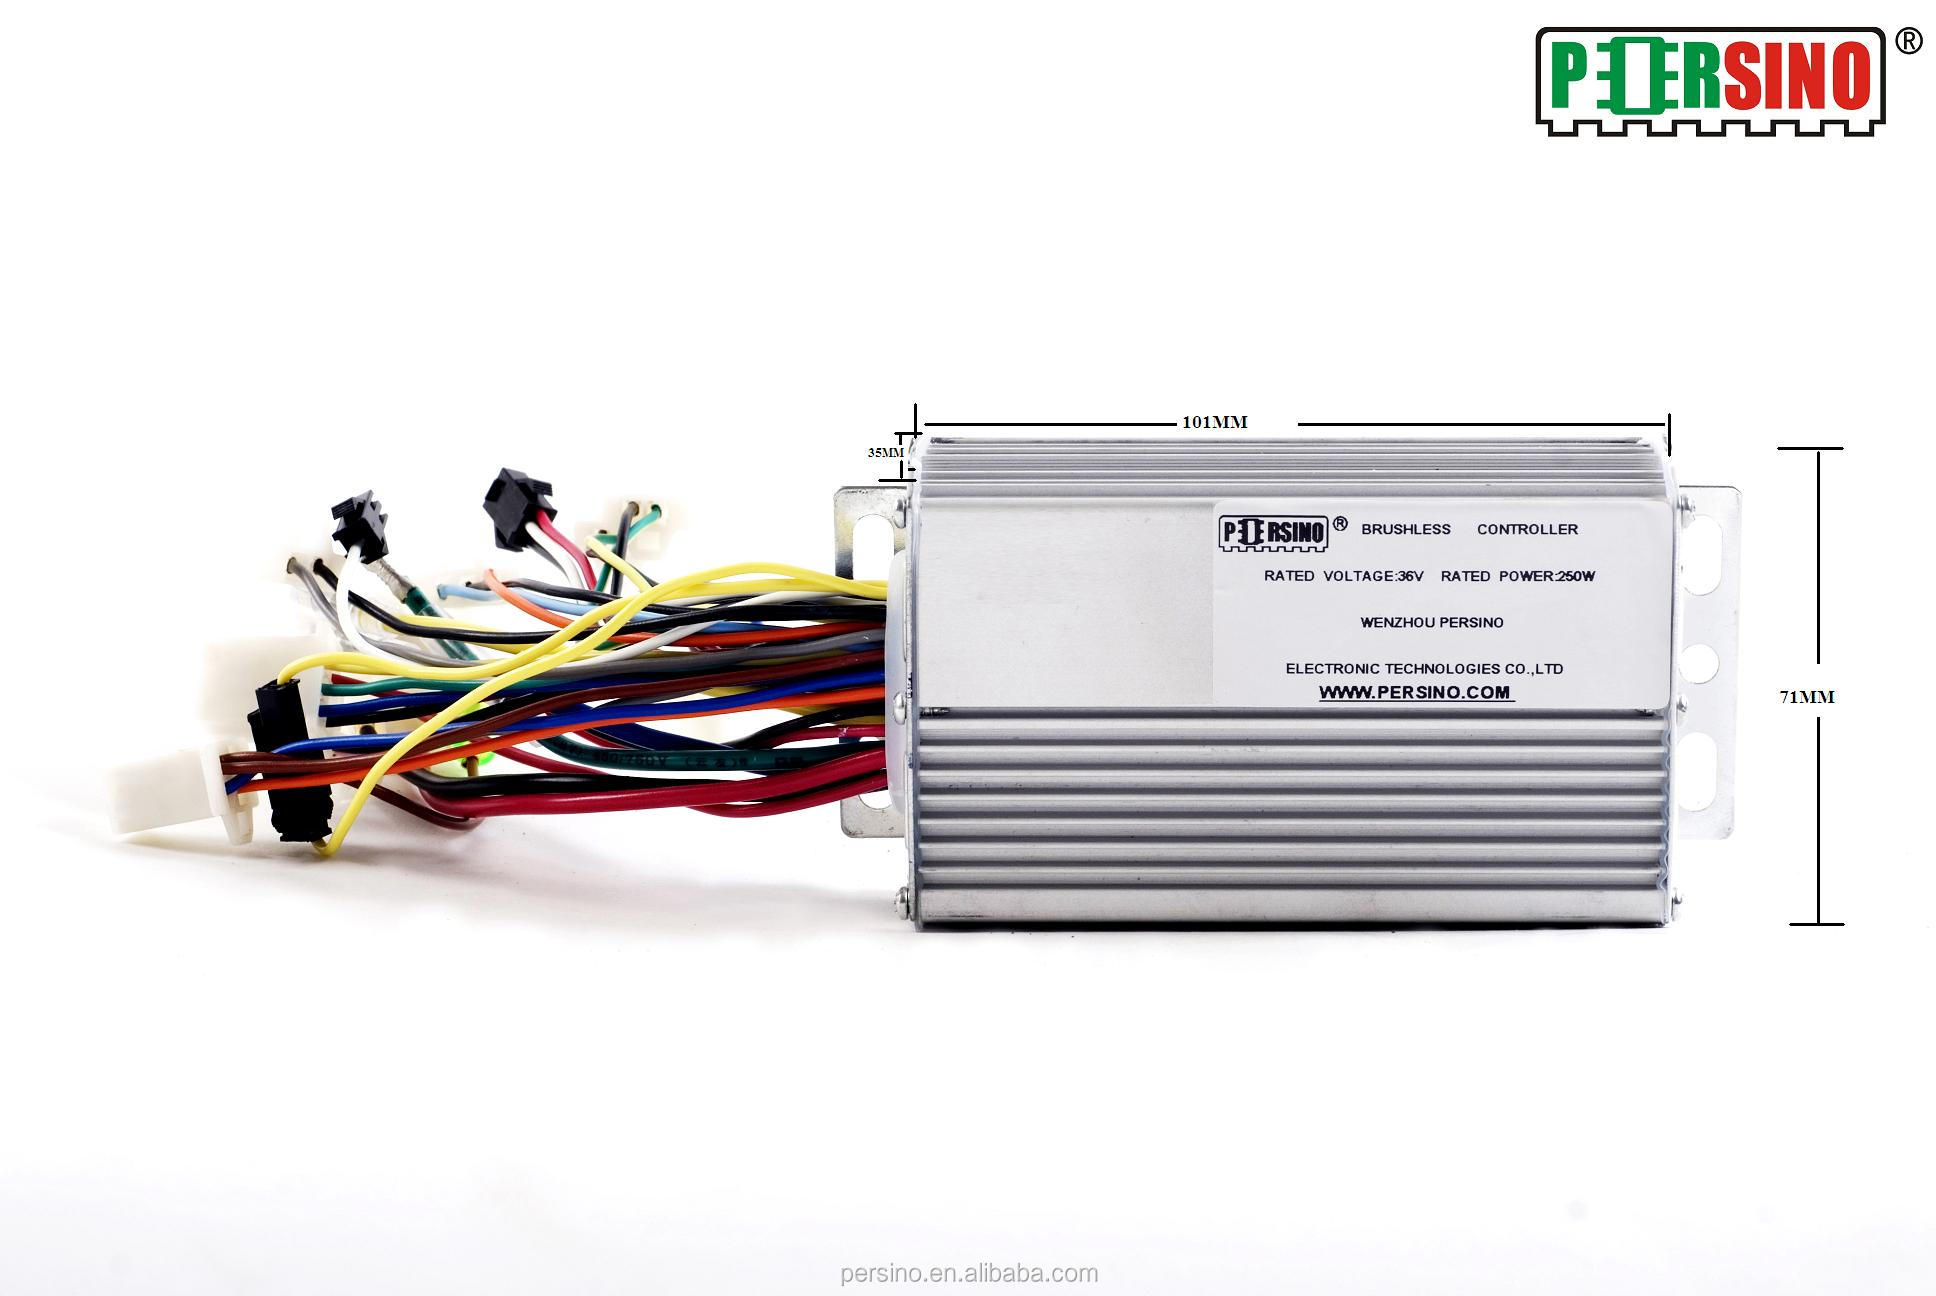 240 to 24 volt transformer wiring diagram best single phase ac motor speed control buy best single